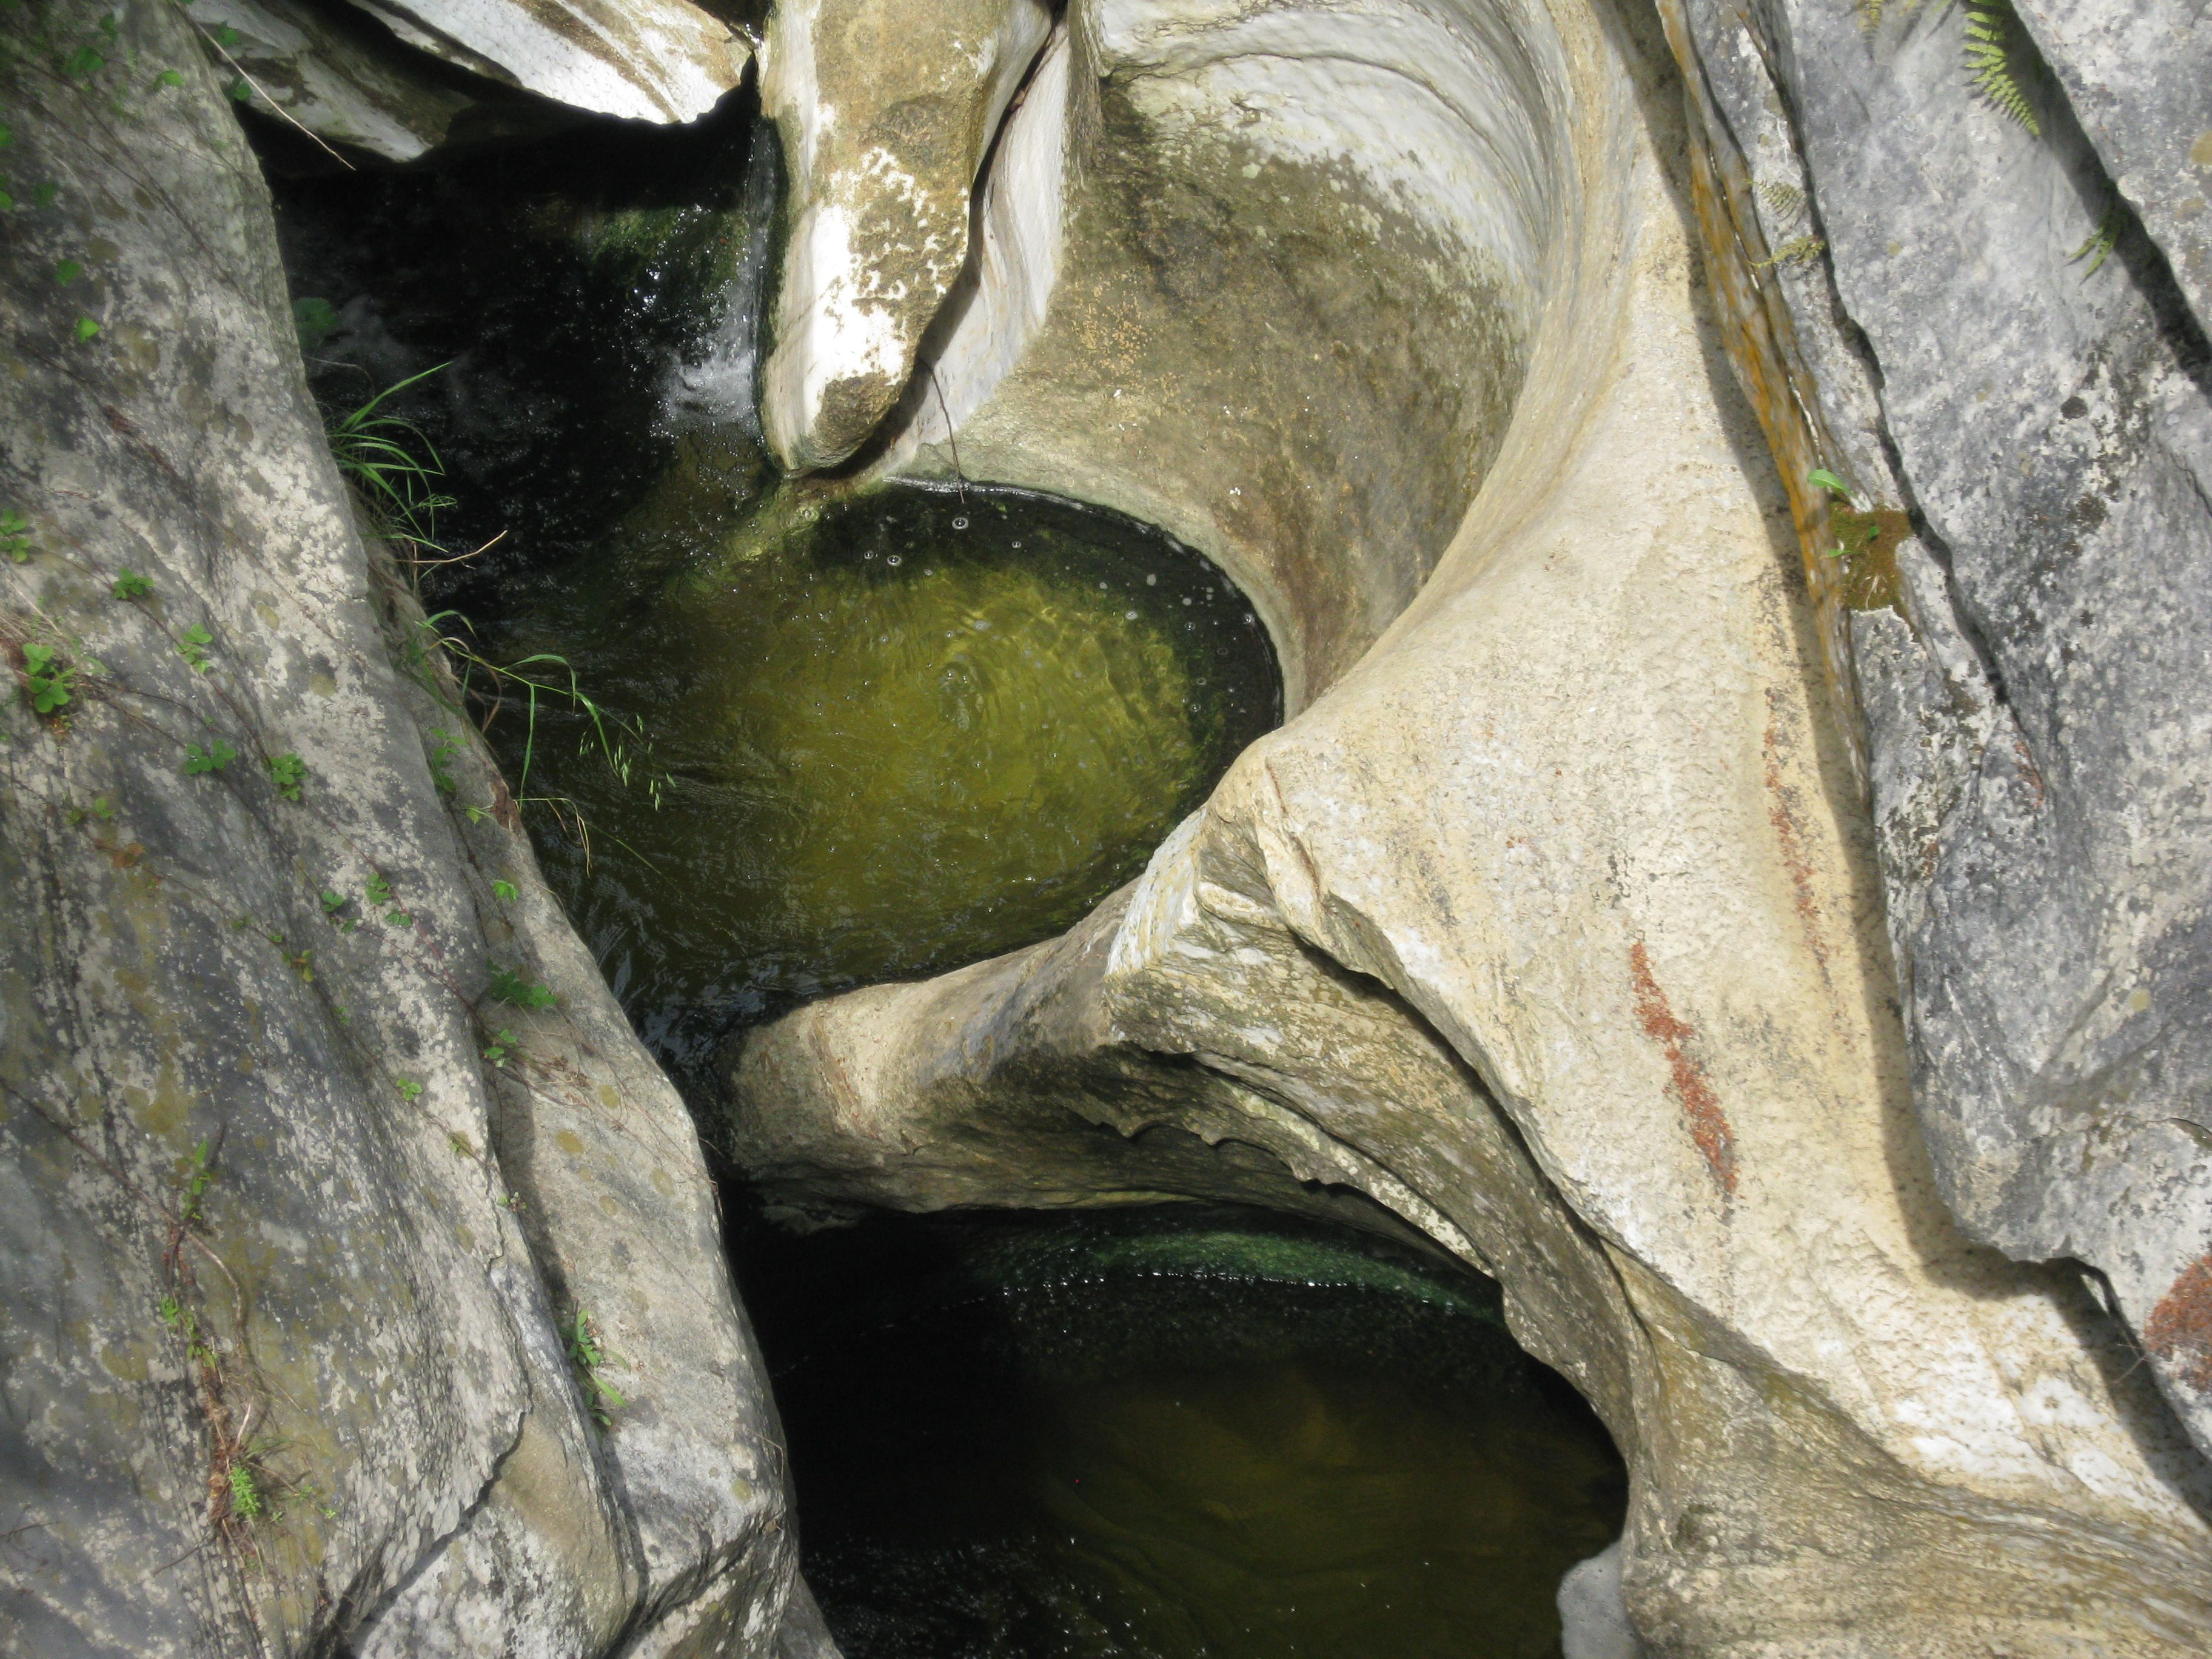 """Glacial potholes. The 'potholes' found in the chasm are products of a process called """"rock drilling"""". Stones, or cobbles, are caught in the current and are bounced by the rushing water. The cobbles nick away at the bedrock creating deep circular holes."""